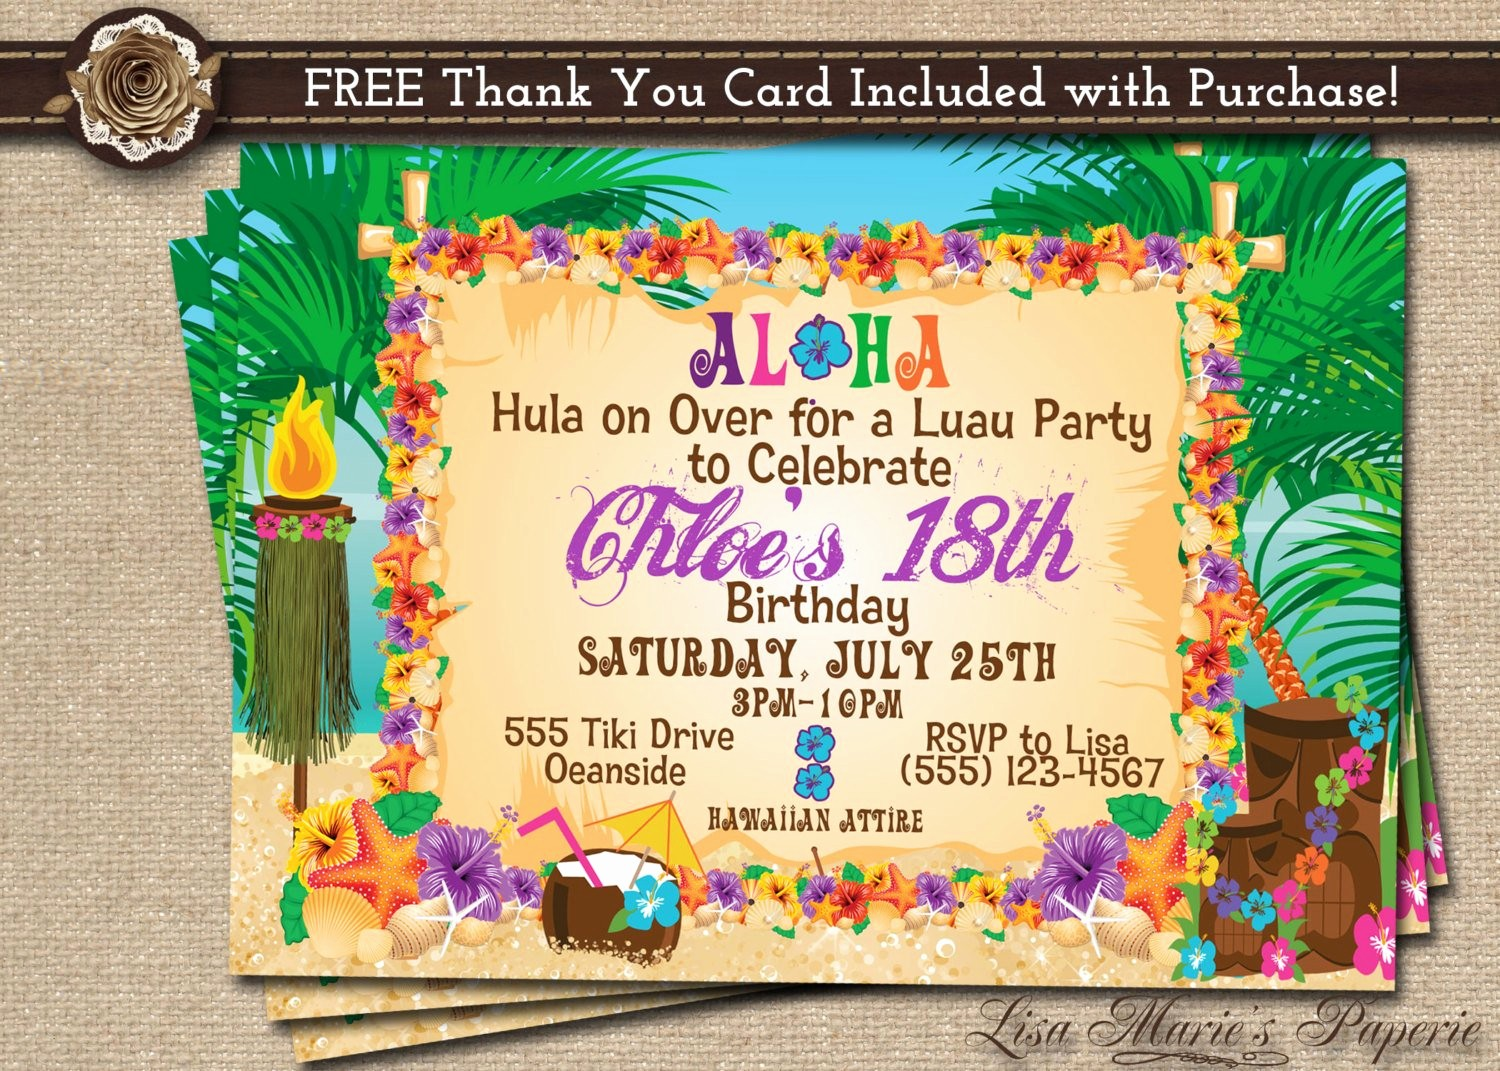 Luau Party Invitations Templates Free Awesome Hawaiian Party Invitation Luau Birthday Invitation Luau